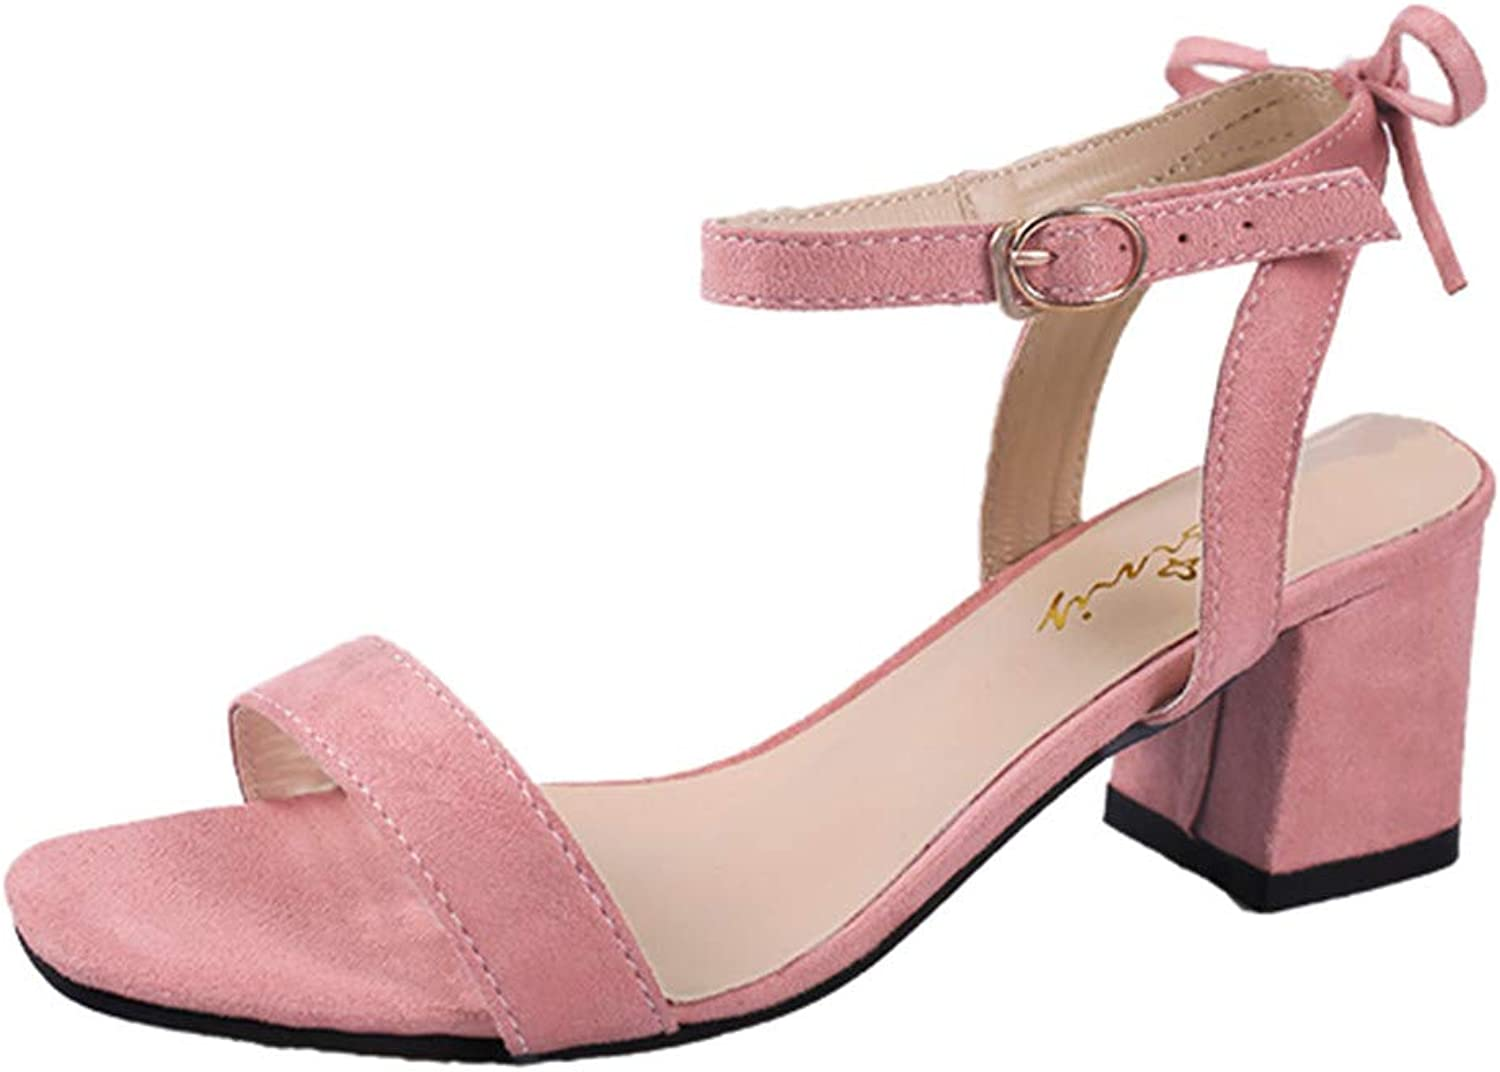 BOLUOYI 2019 High Heels for Women Women's Fashion Casual Solid Buckle Strap Square Heel Sandals Med Heel shoes Sandals Womens Heel Wedge